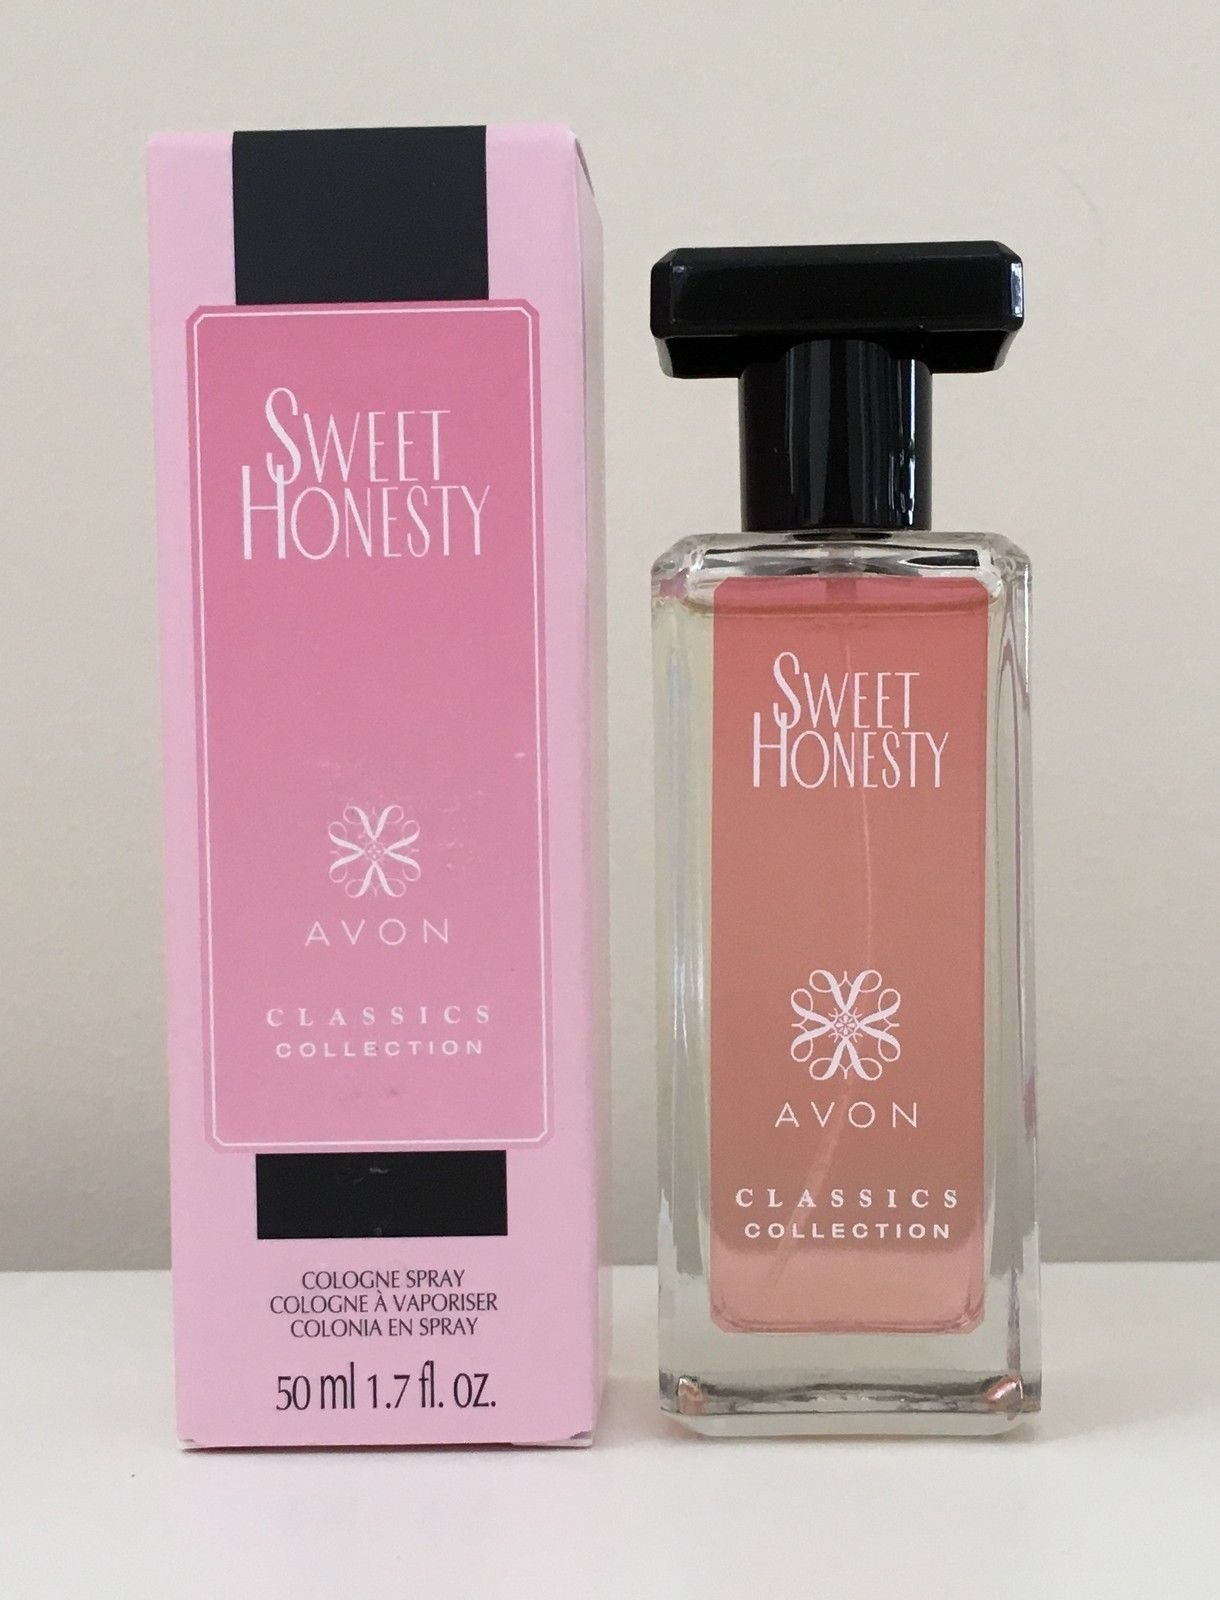 Sweet Honesty by Avon Cologne Spray 1.7 oz Women